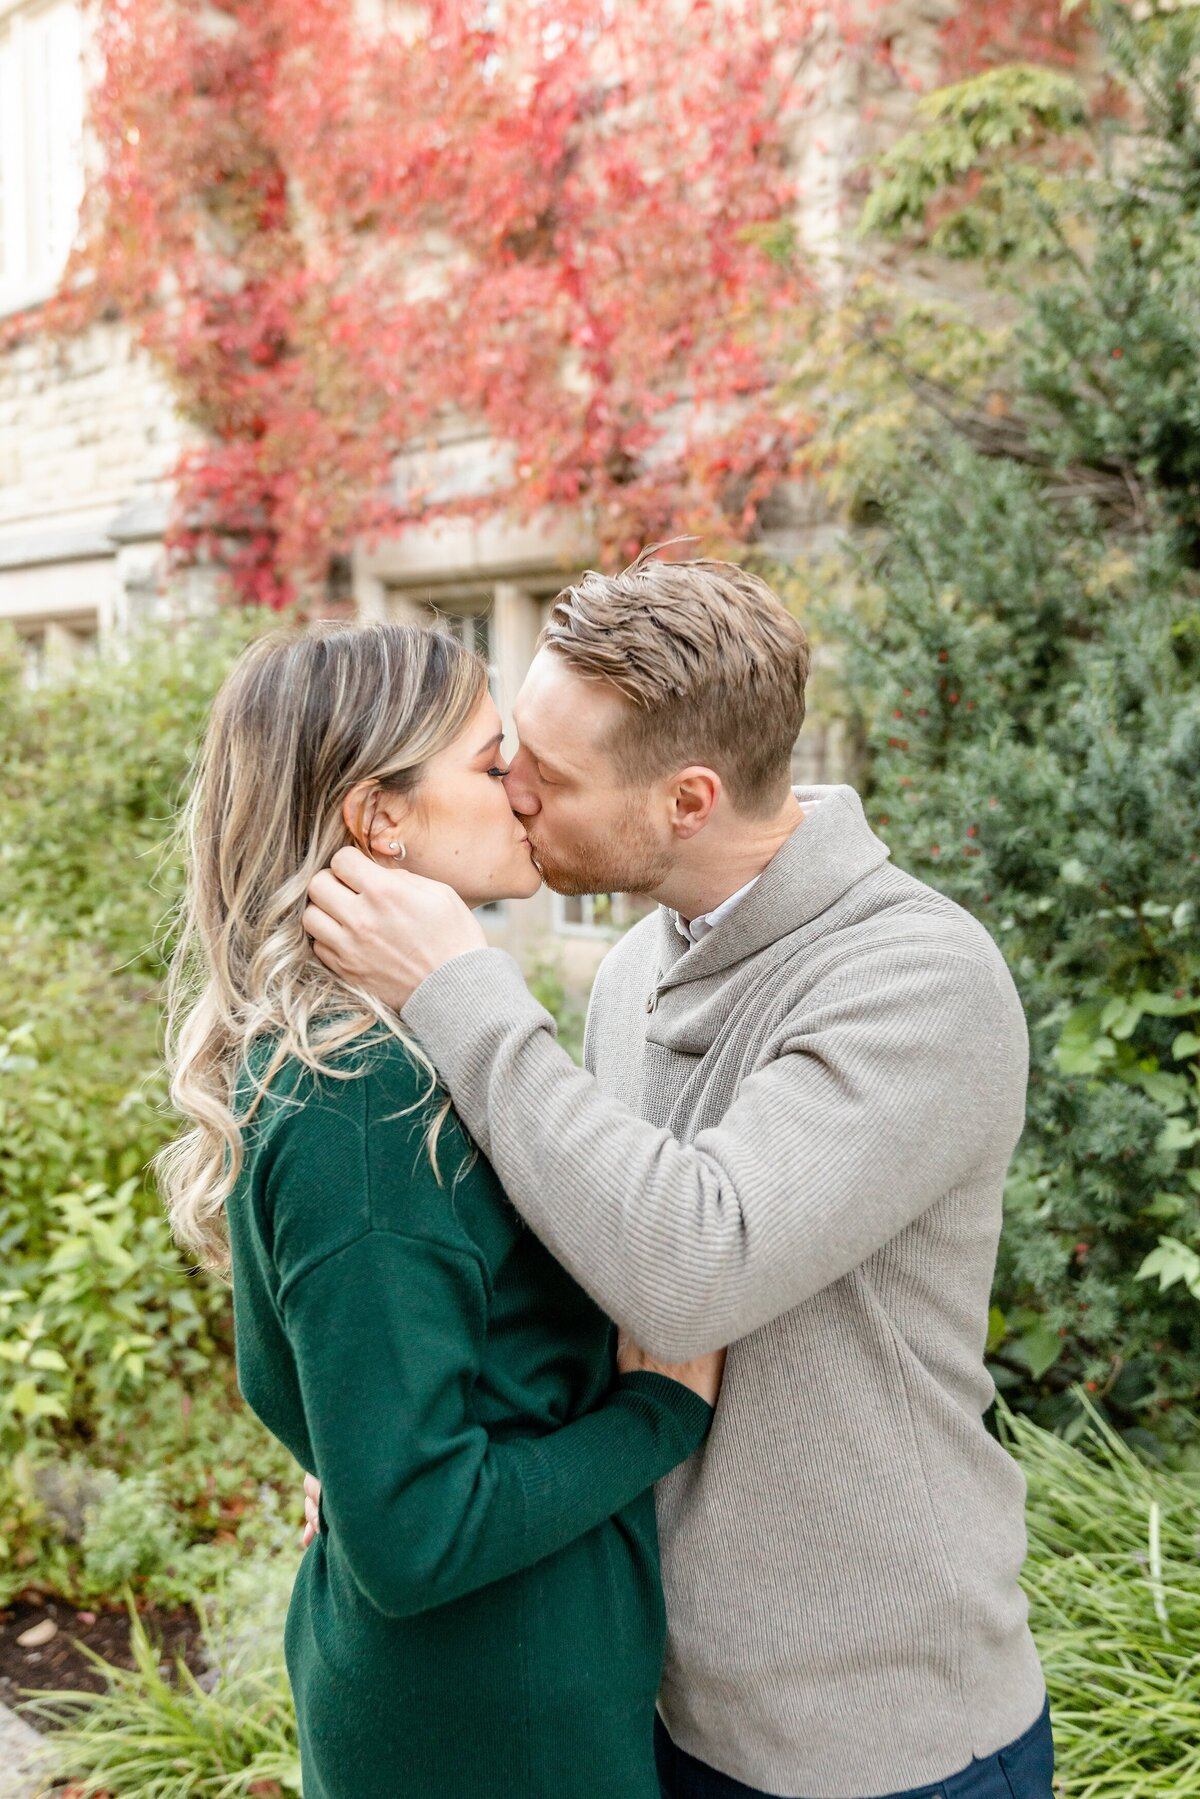 Couple-kisses-as-guy-pushes-back-her-hair-at-western-university